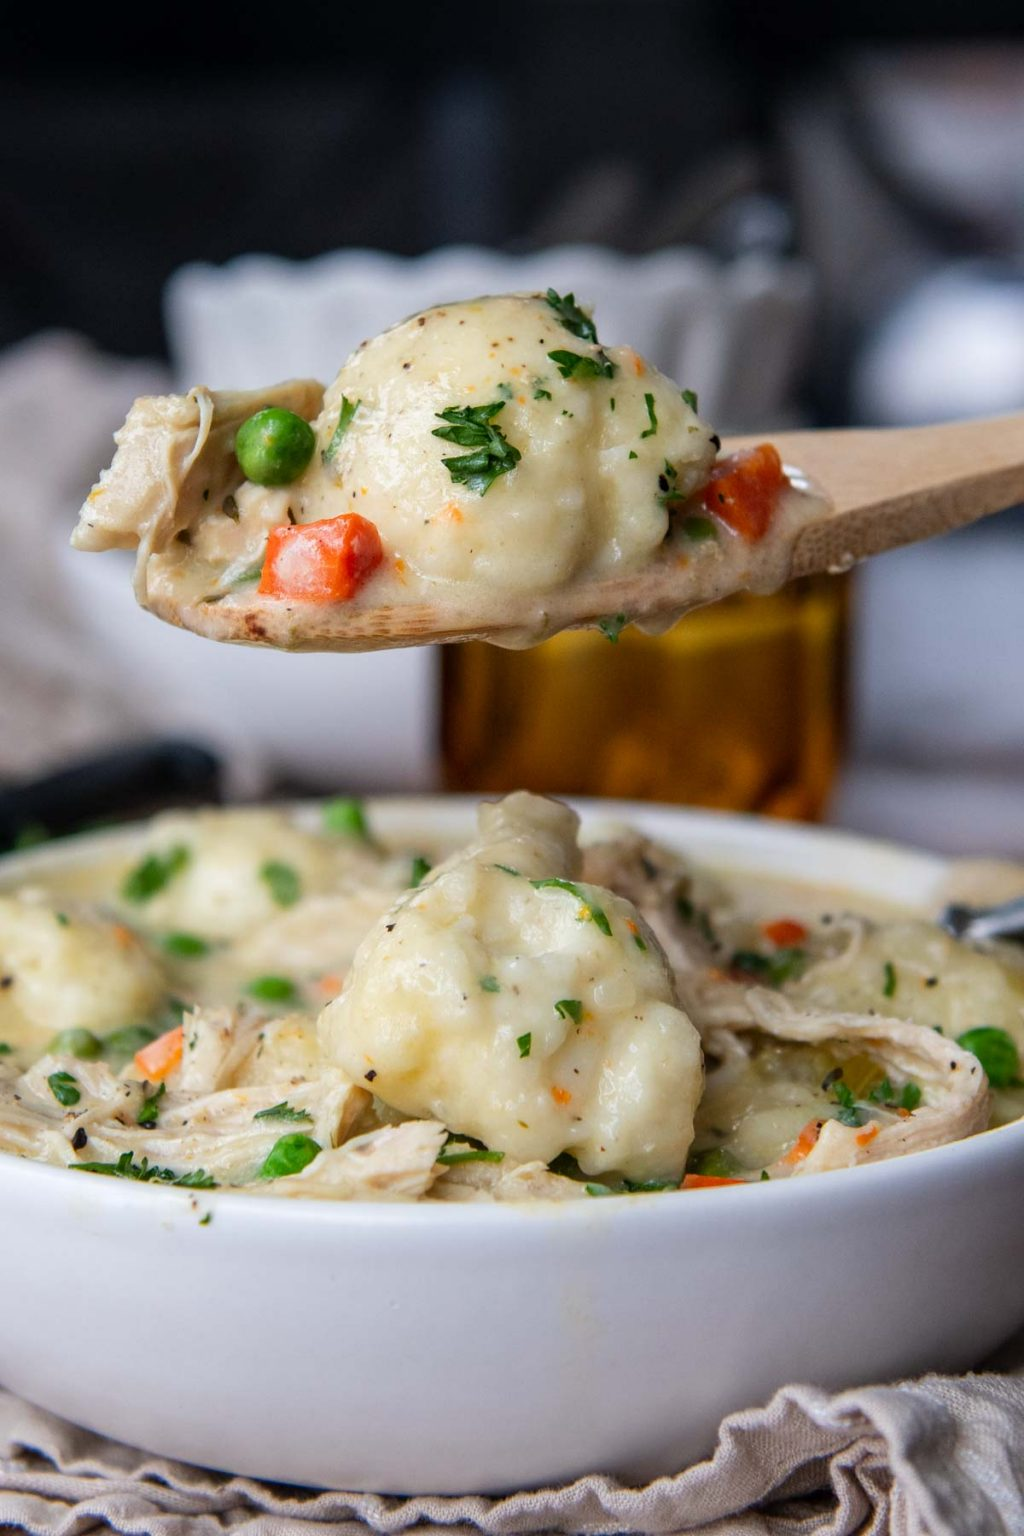 a wooden spoon holding up a scoop of chicken and dumplings